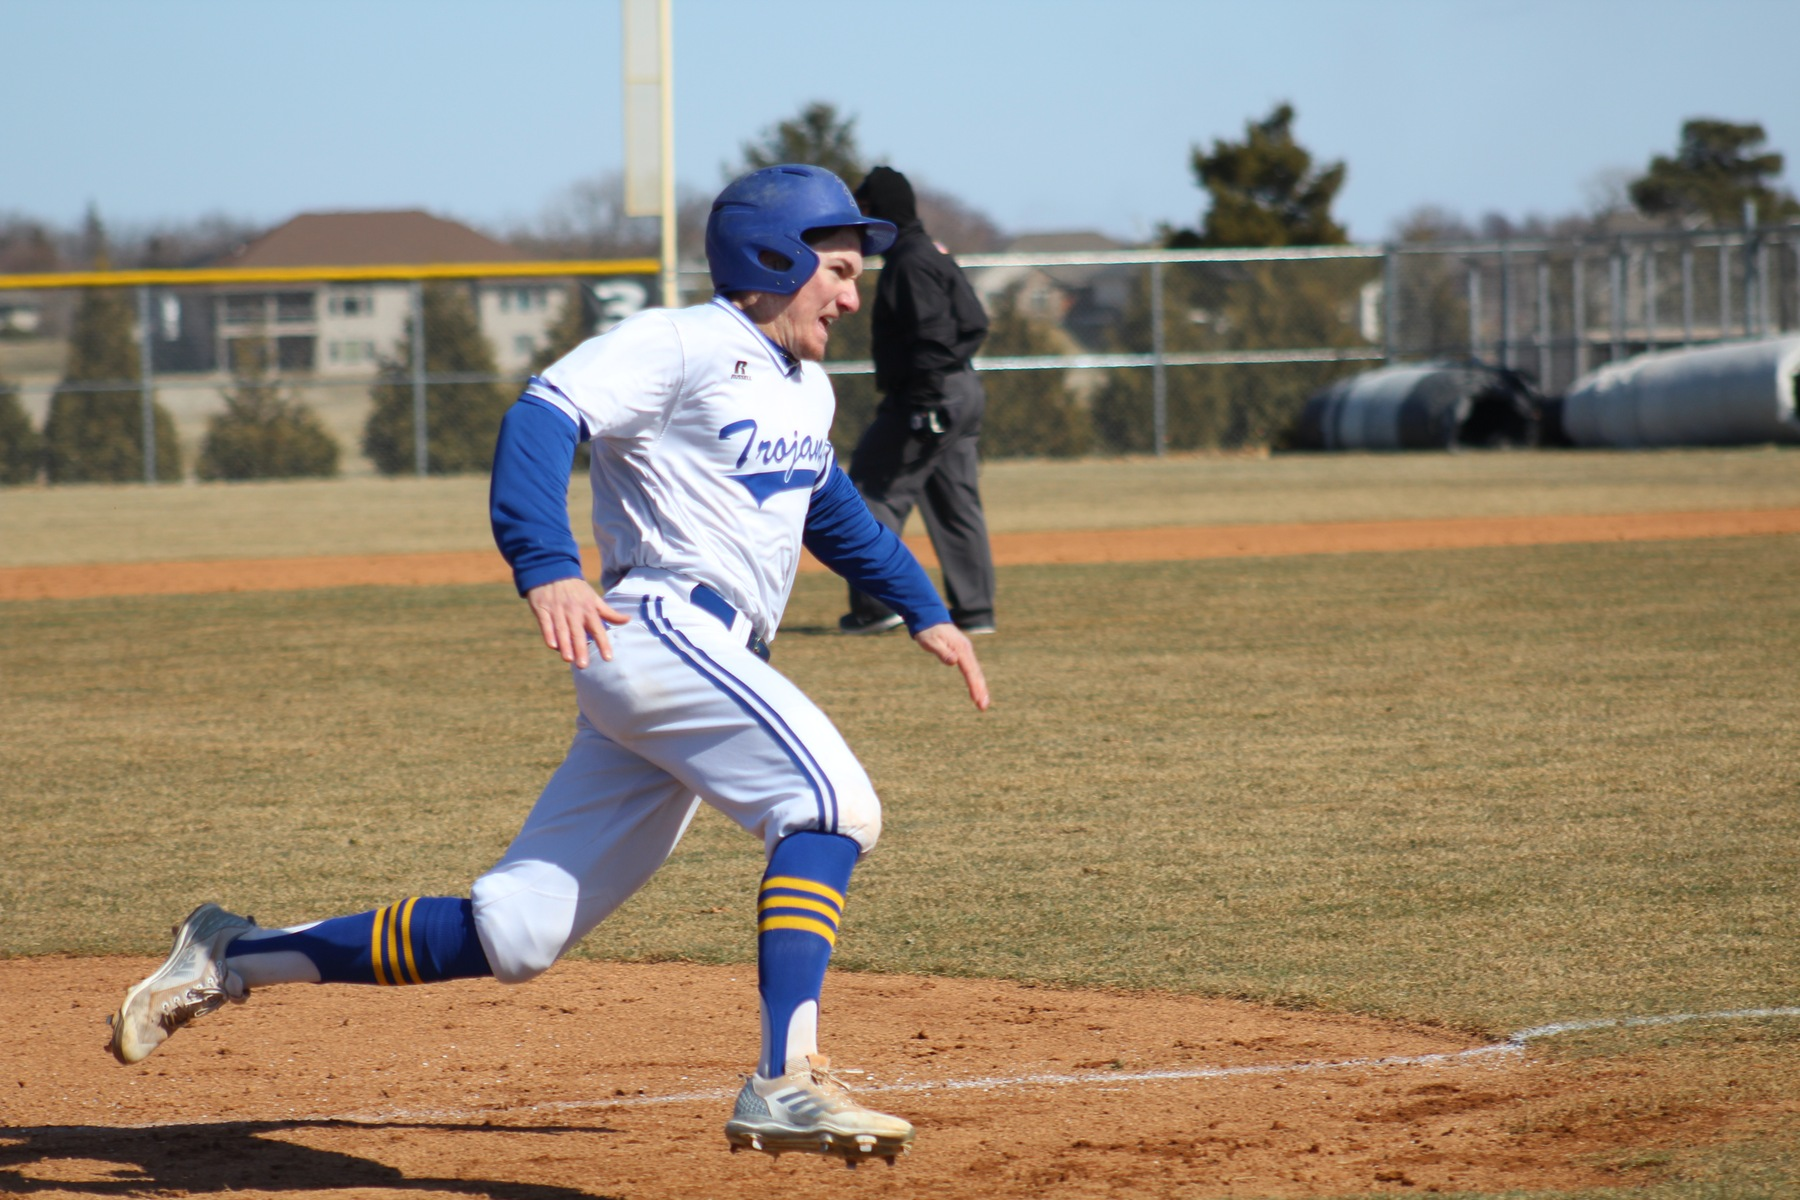 NIACC, DMACC split pair